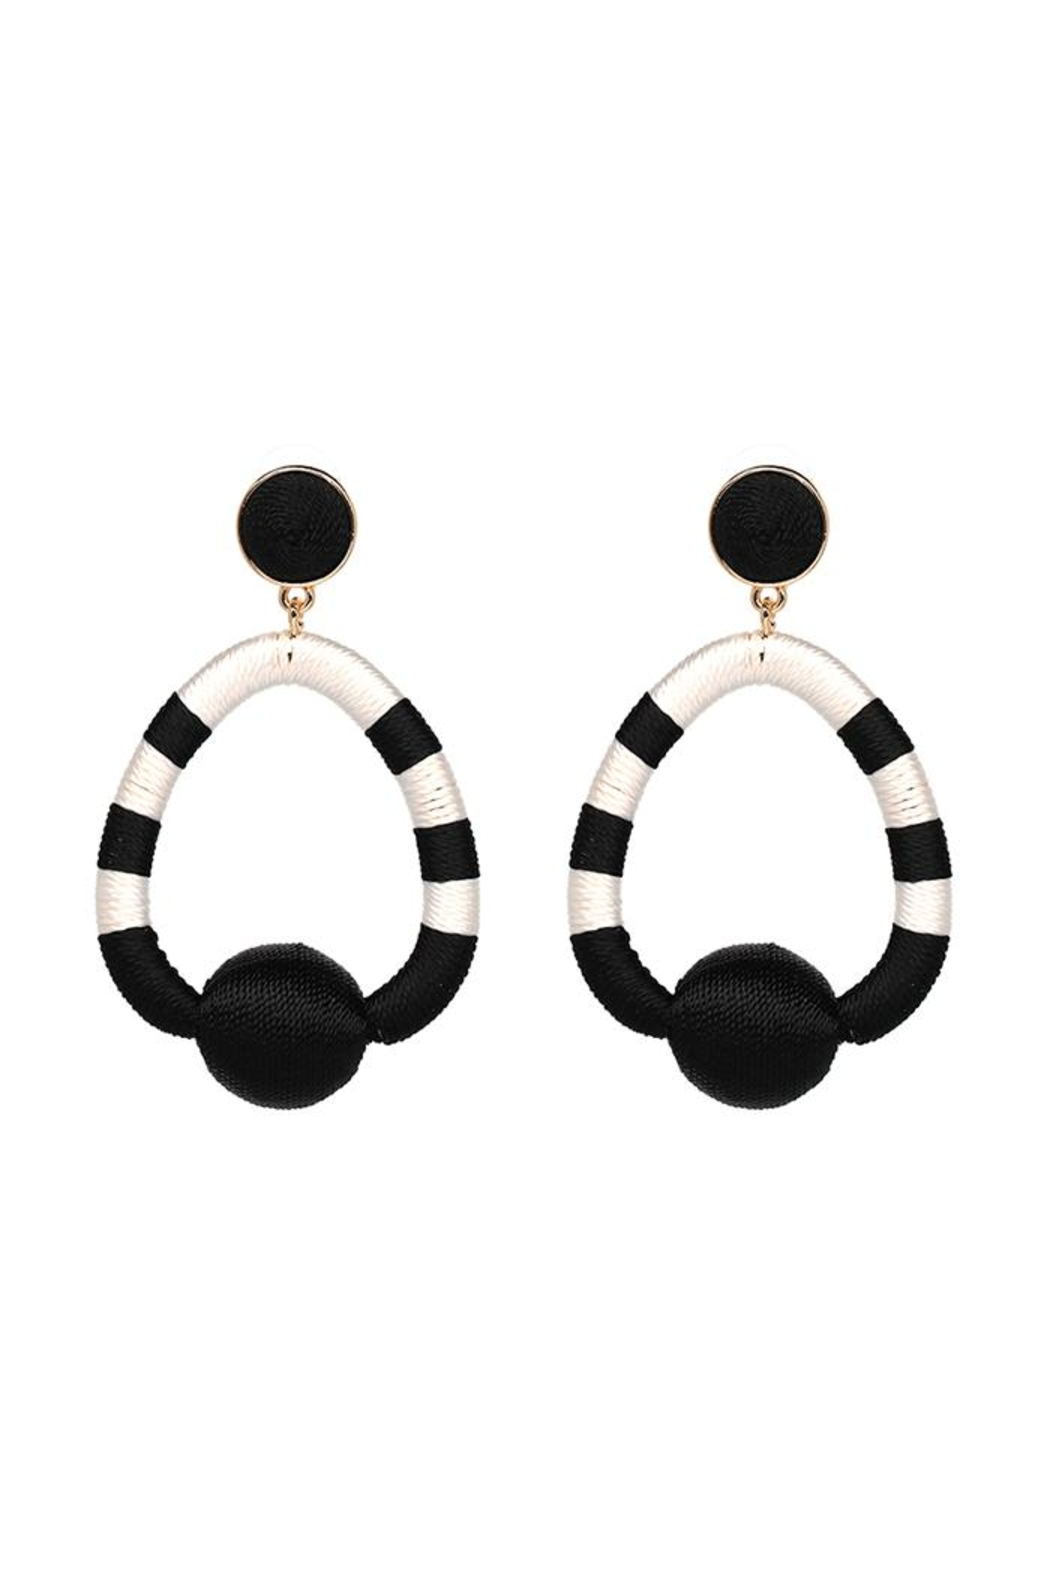 Madison Avenue Accessories Charlie Black Earring - Main Image